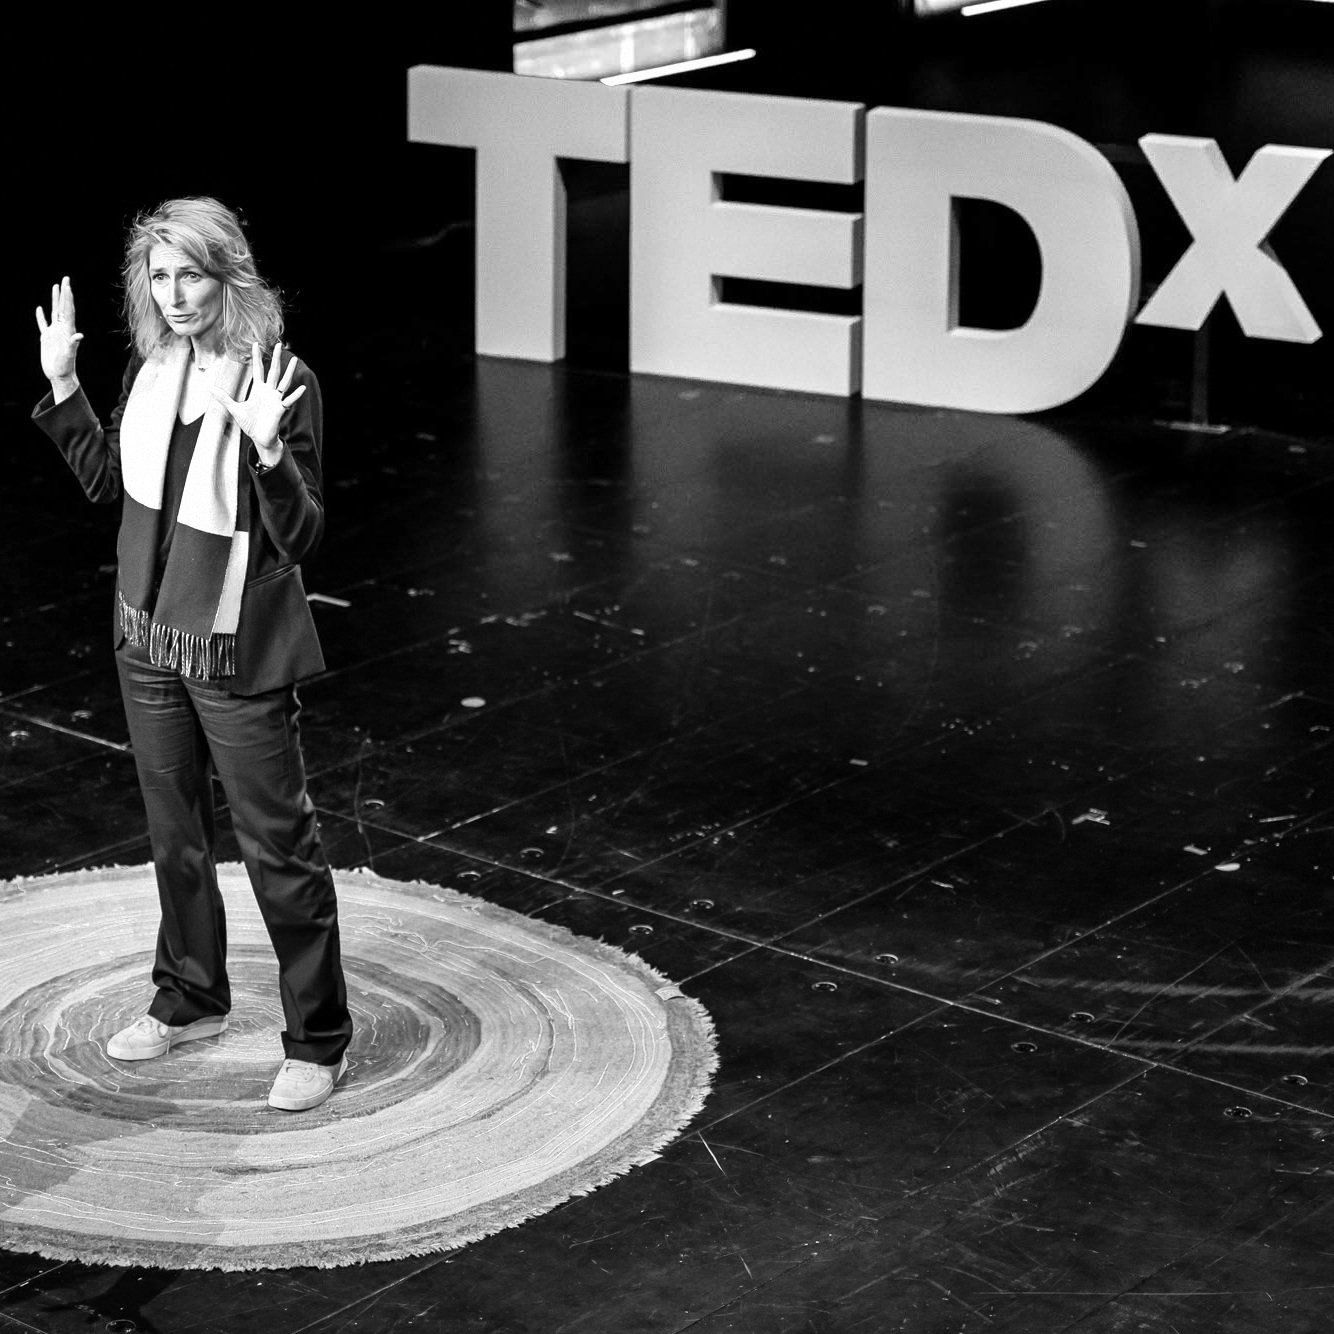 Nathalie Weidenfeld - Digital Humanism oder how to be adult the digital age